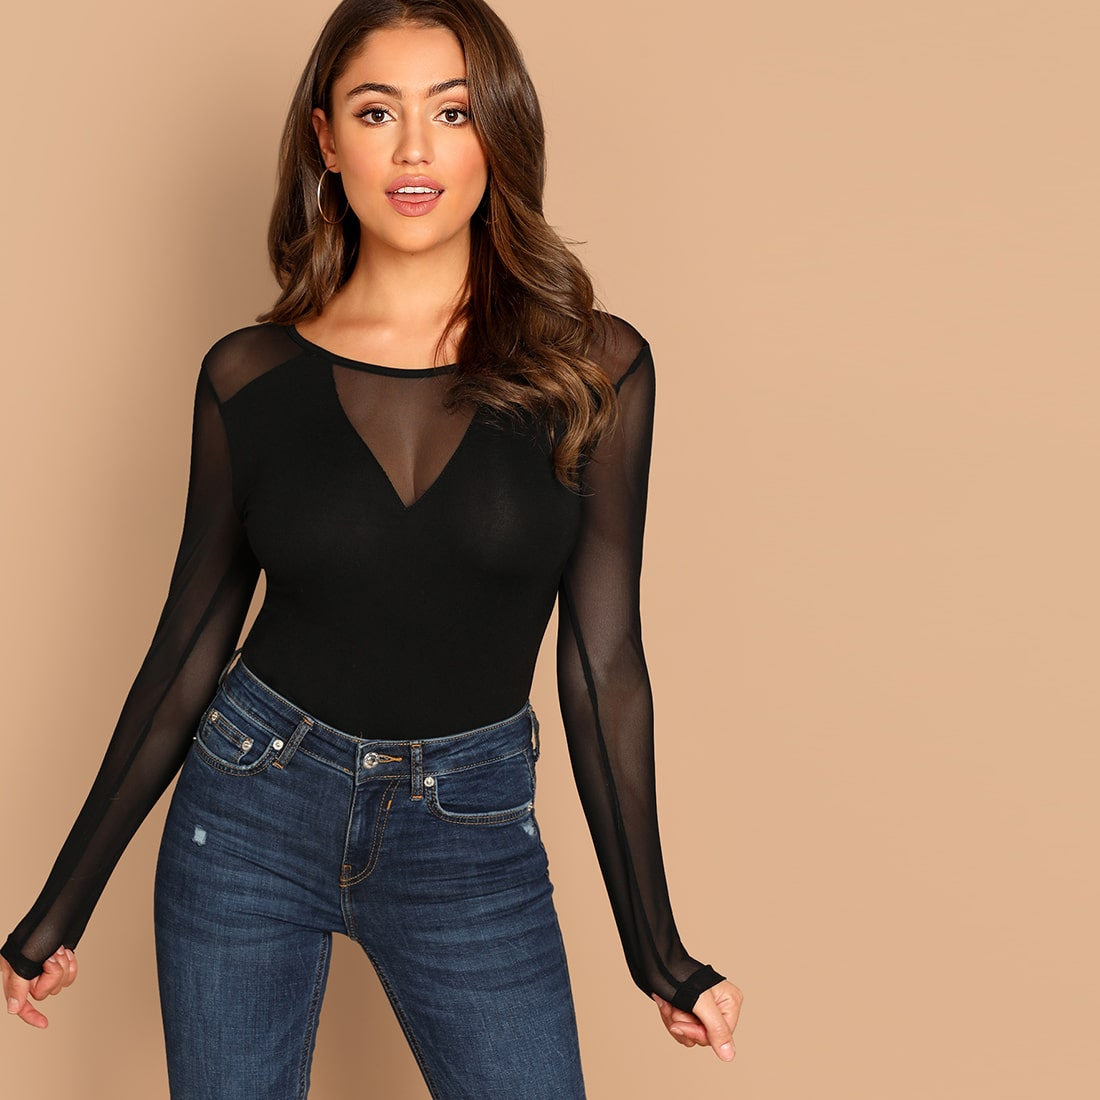 SHEIN coupon: Sheer Mesh Panel Form Fitted Tee